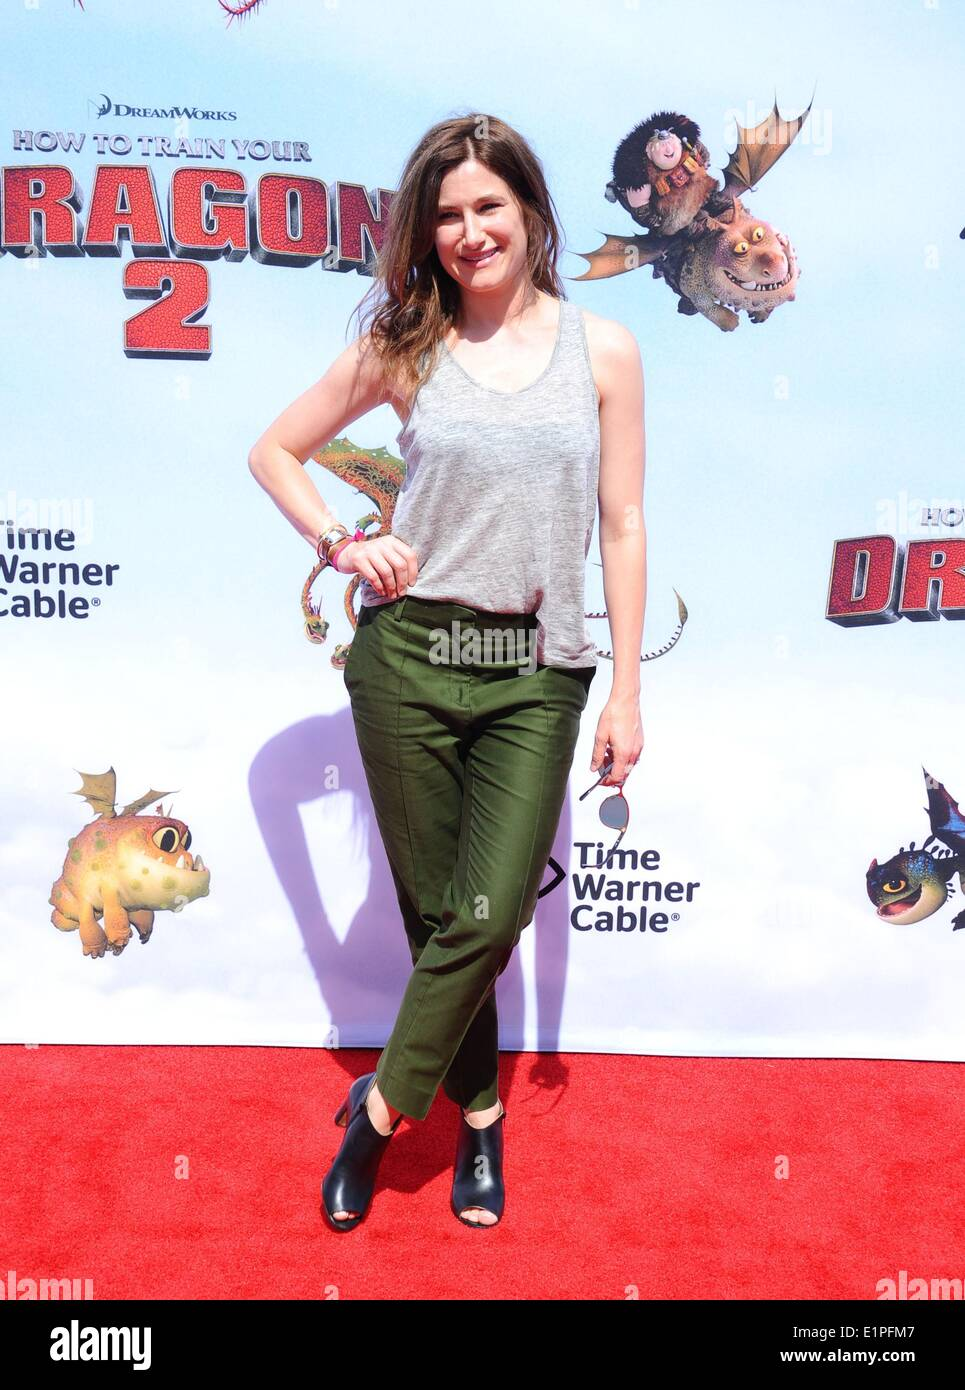 Los Angeles, CA, USA. 8th June, 2014. Kathryn Hahn at arrivals for HOW TO TRAIN YOUR DRAGON 2 Premiere, The Regency Village Theatre, Los Angeles, CA June 8, 2014. Credit:  Dee Cercone/Everett Collection/Alamy Live News - Stock Image